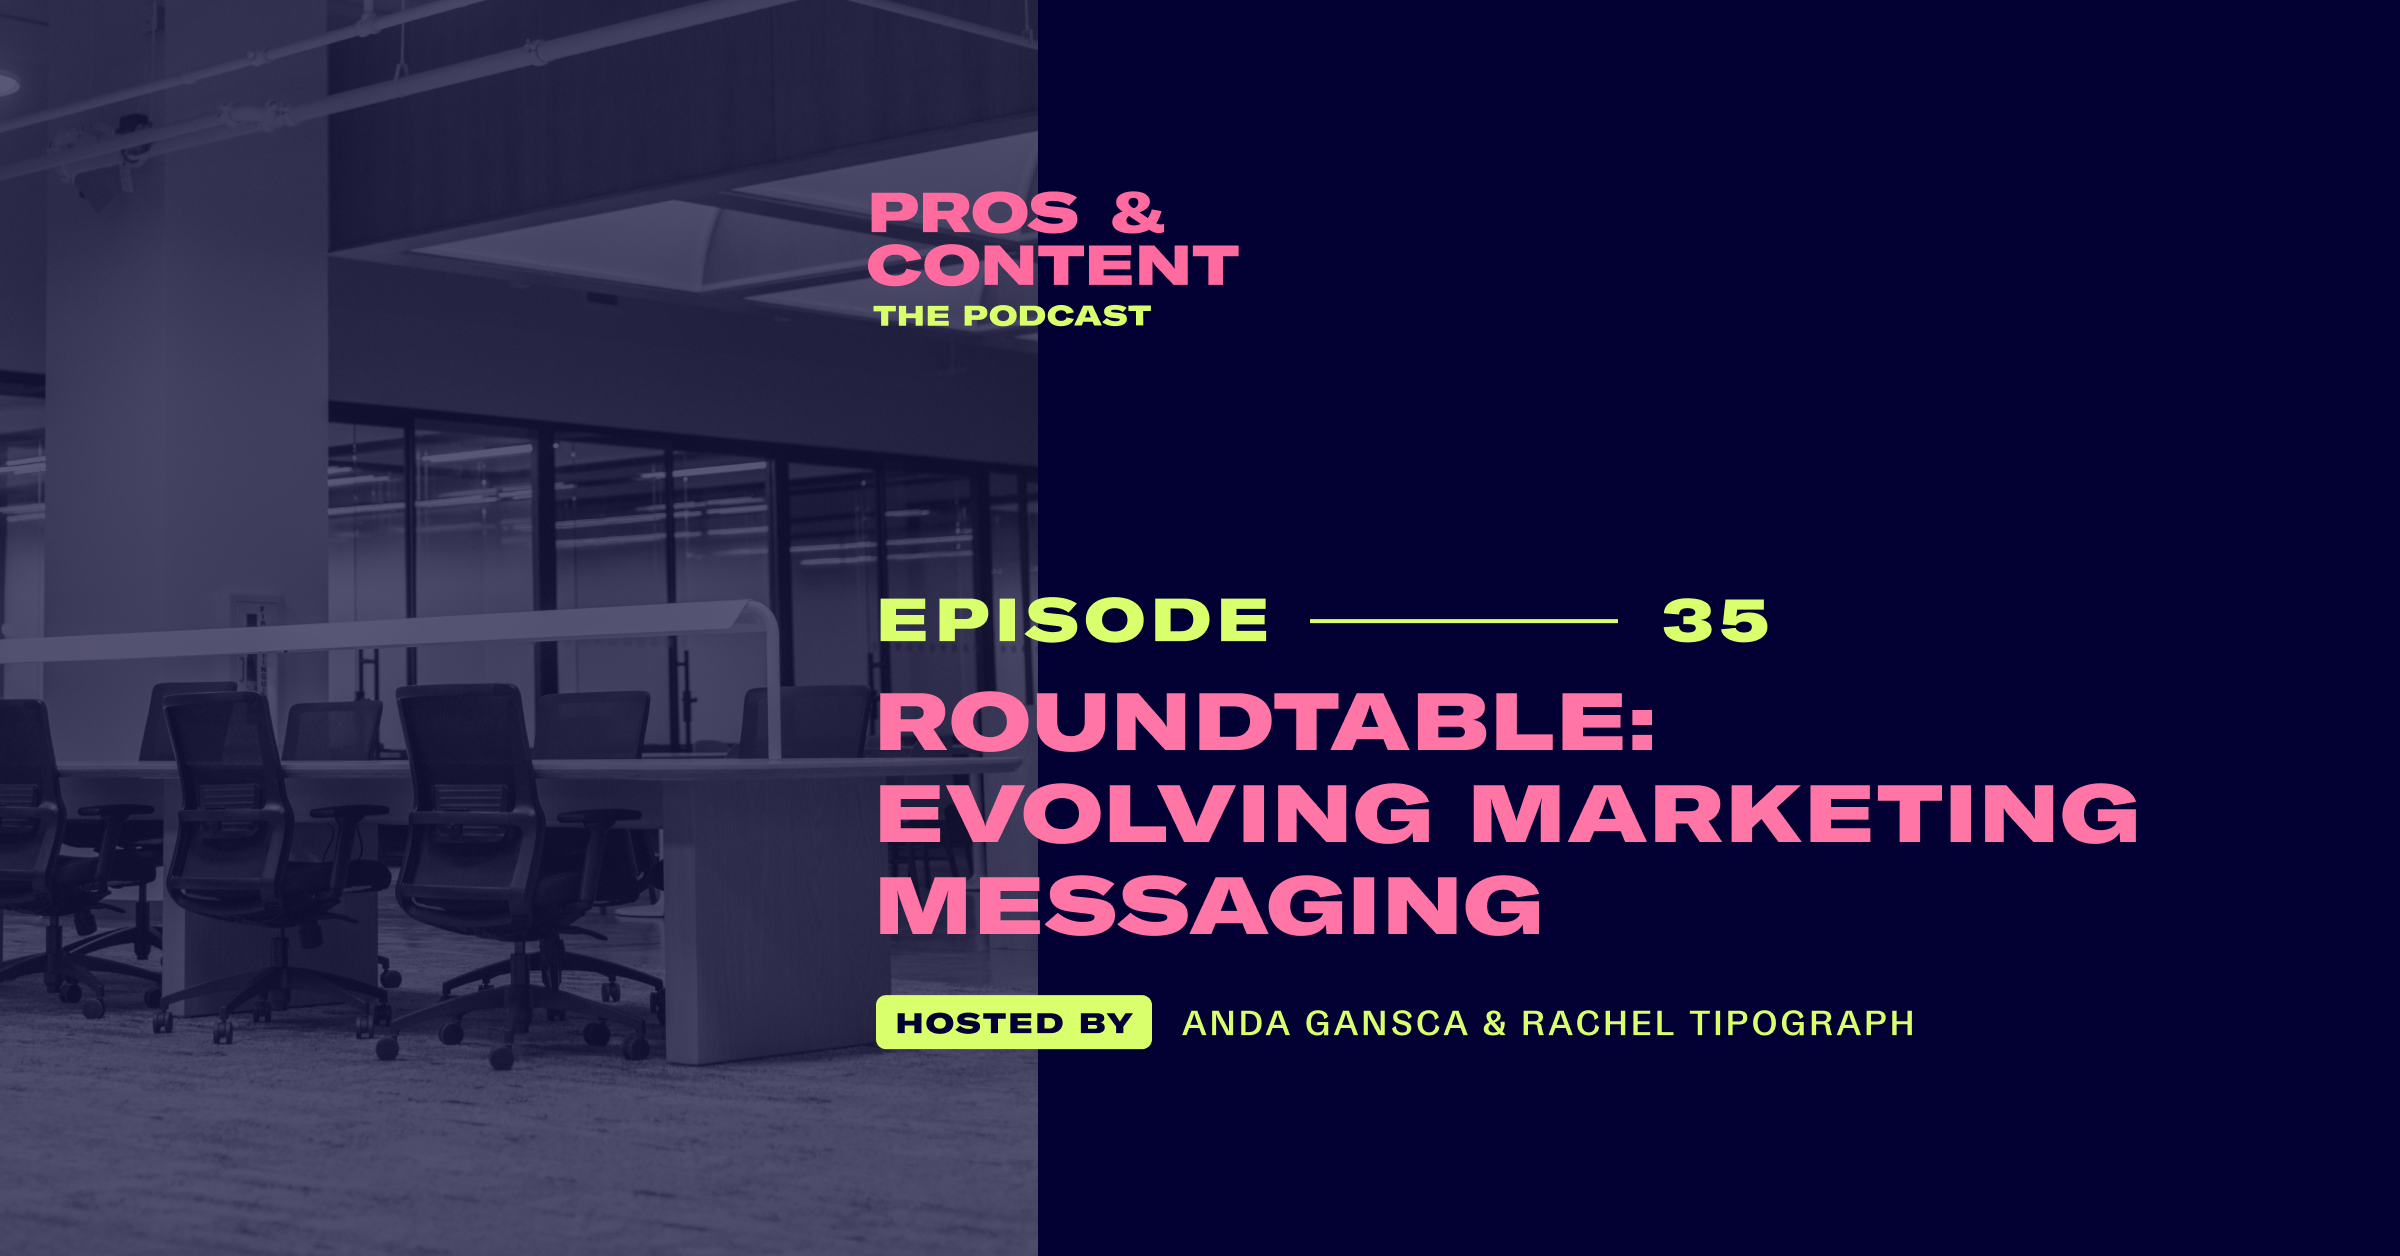 Pros & Content Podcast: Roundtable - Evolving Marketing Messaging